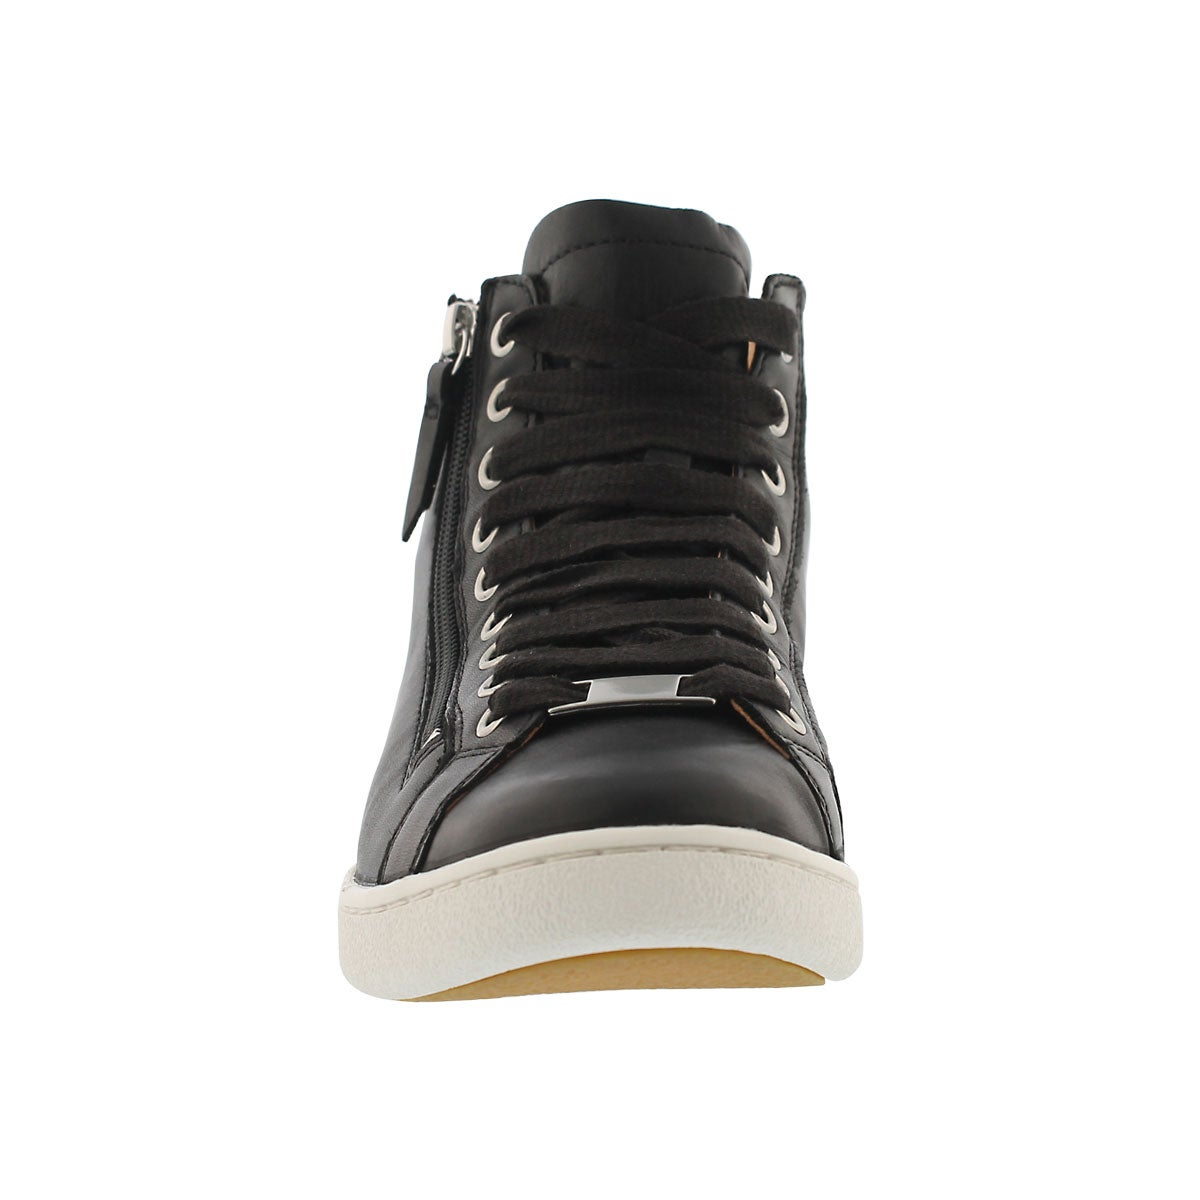 Lds Olive black lace up high top sneaker